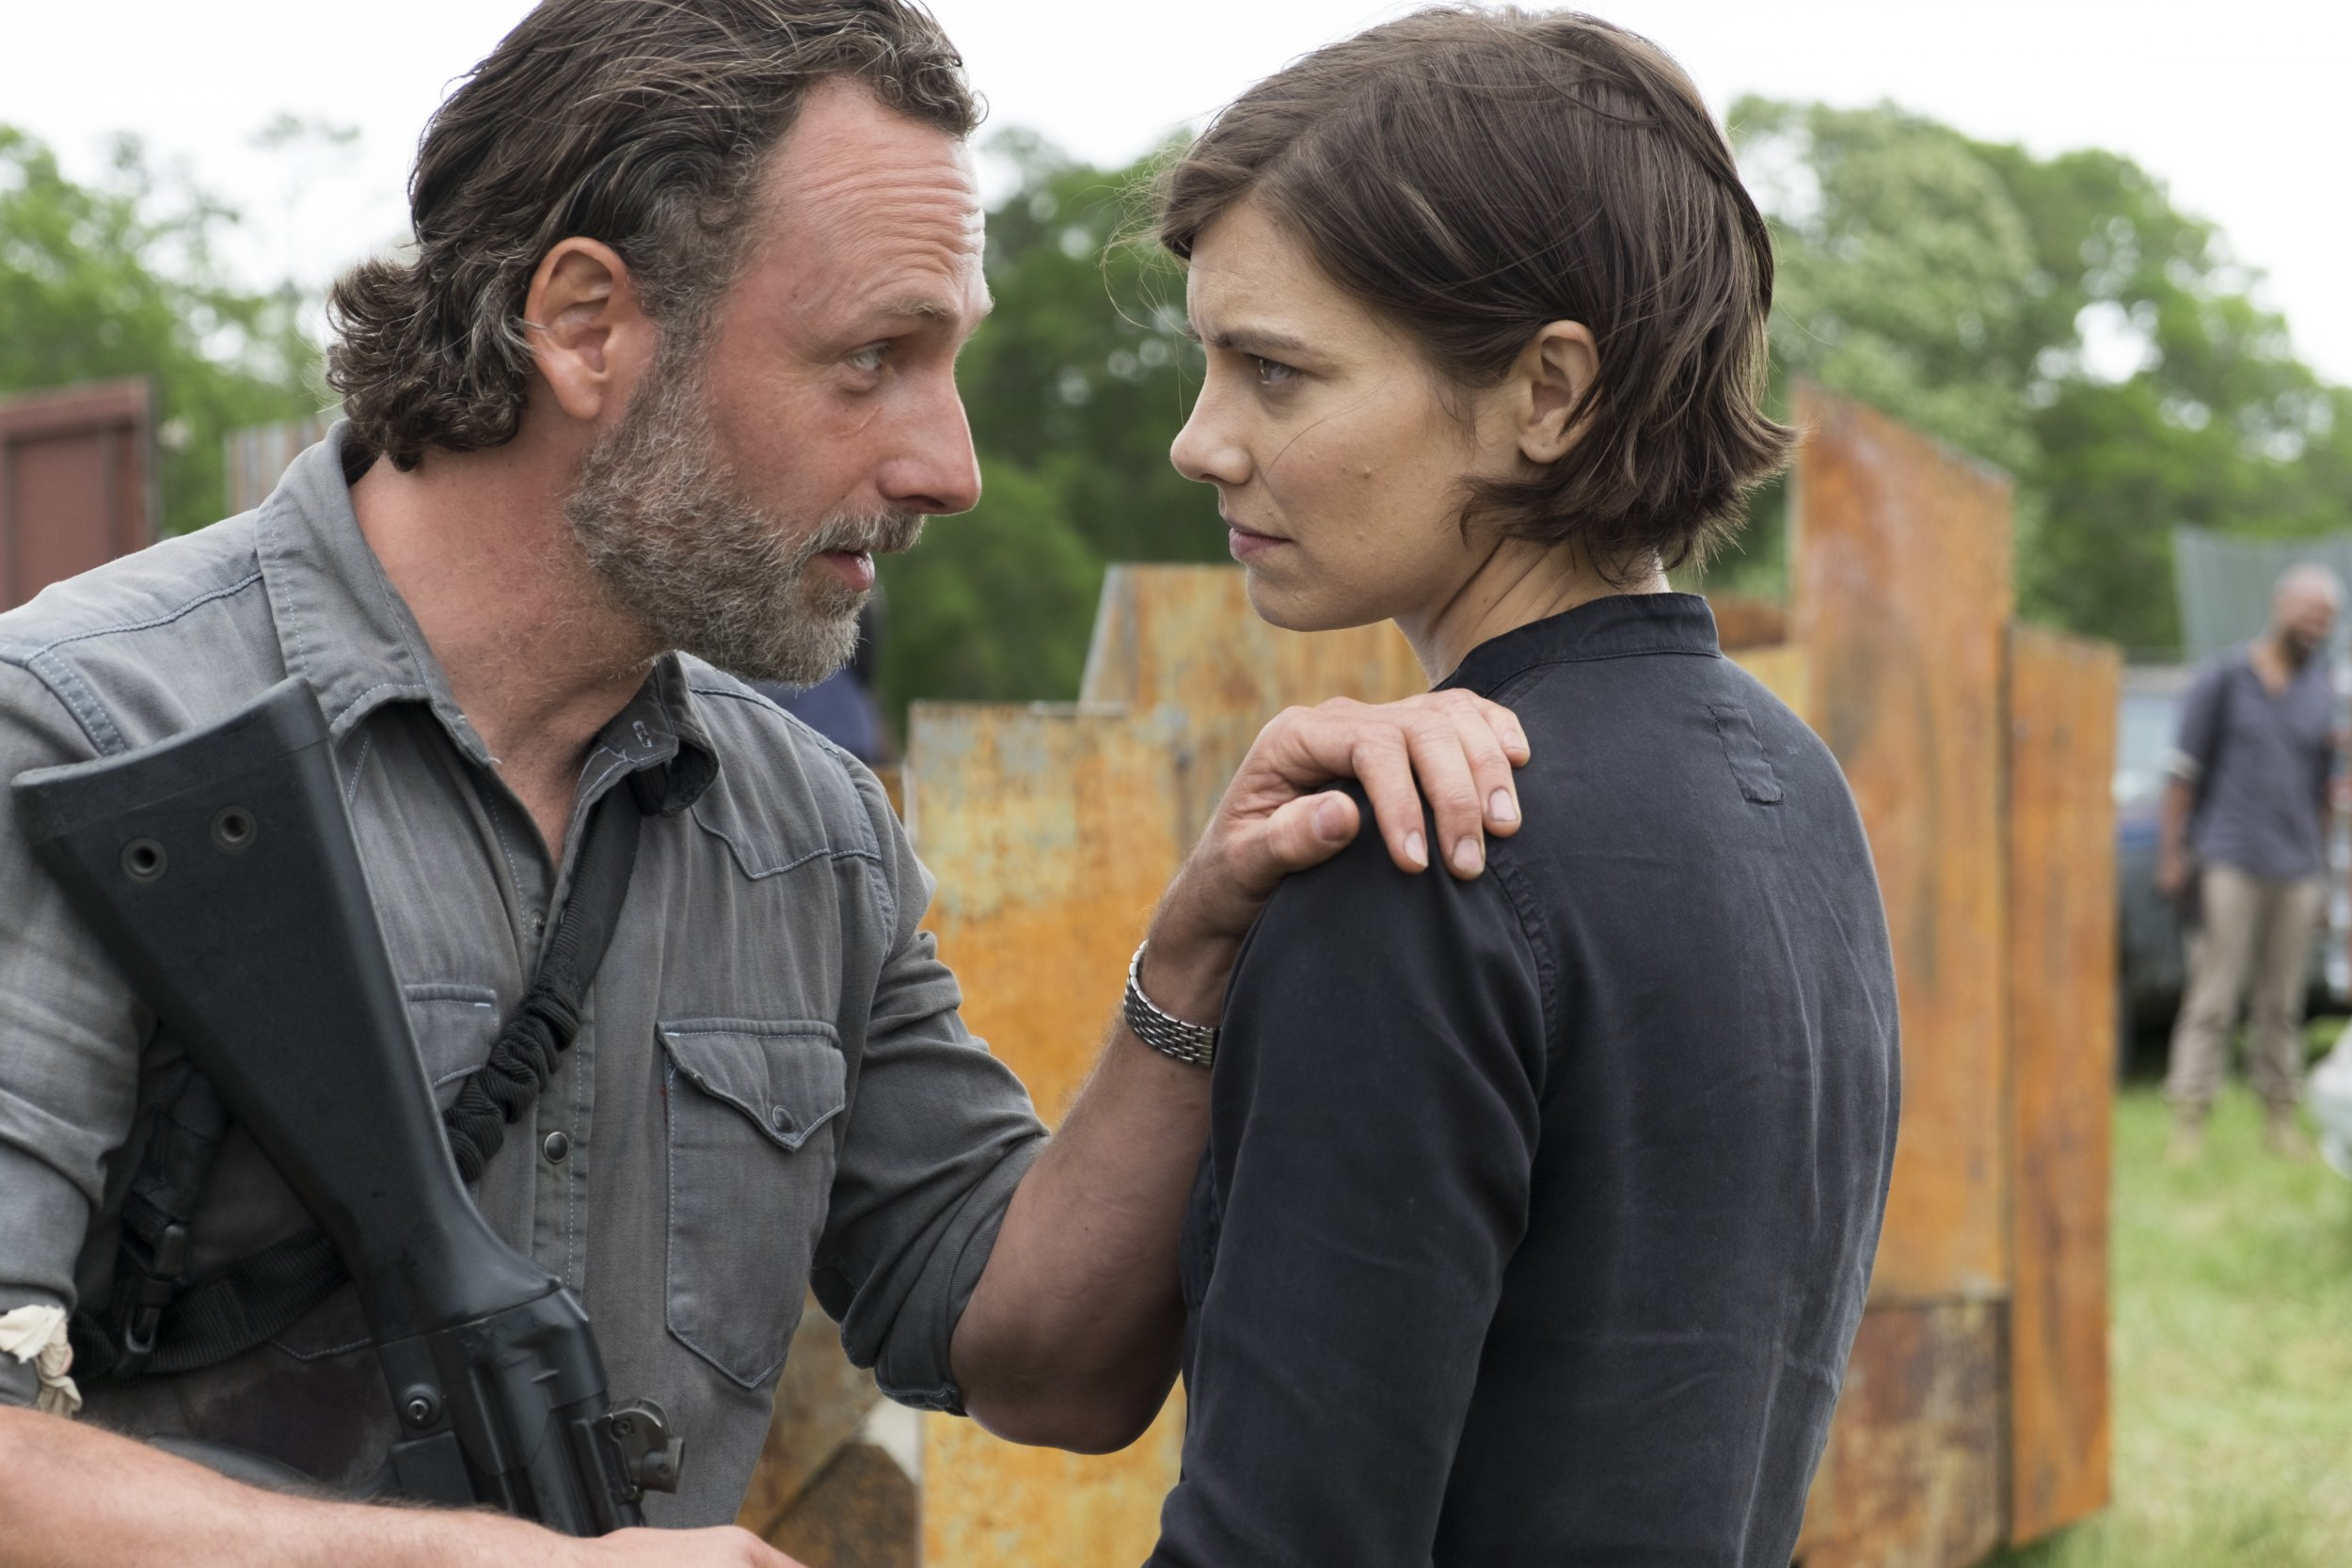 Make 'The Walking Dead' Great Again: 5 Ways to Breathe Life